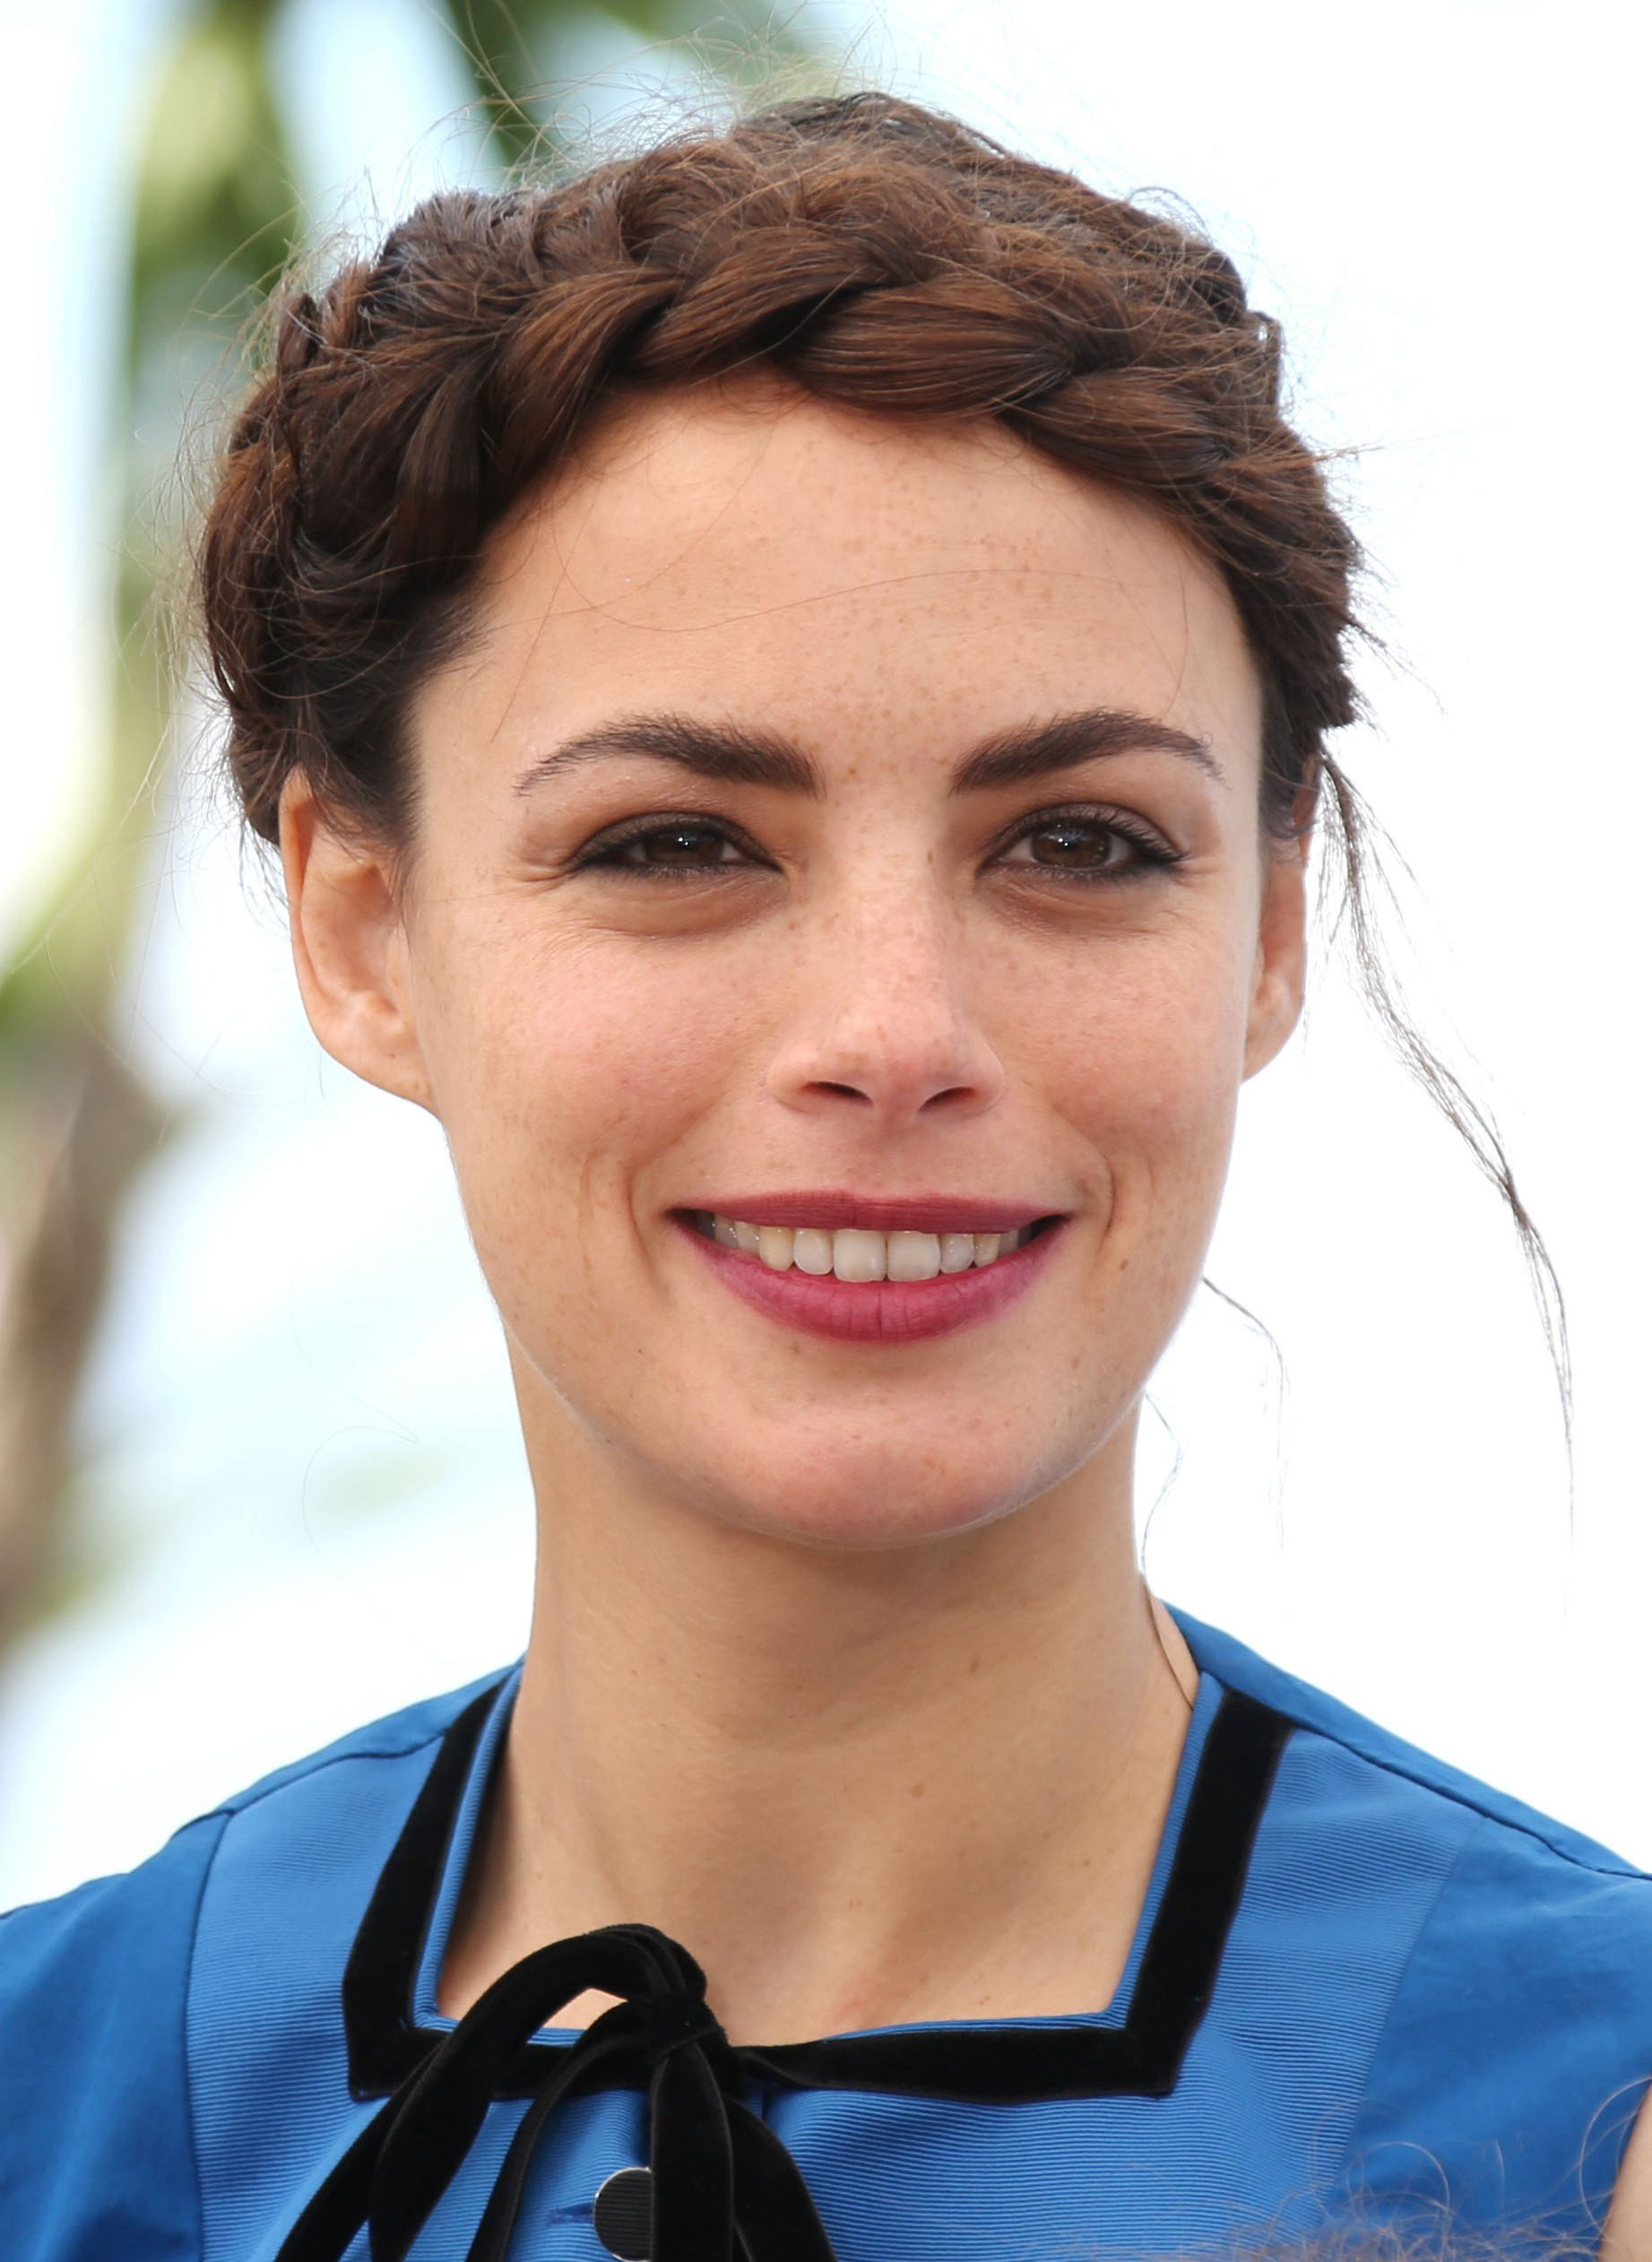 Berenice Bejo with a Forehead Thick Band Braid